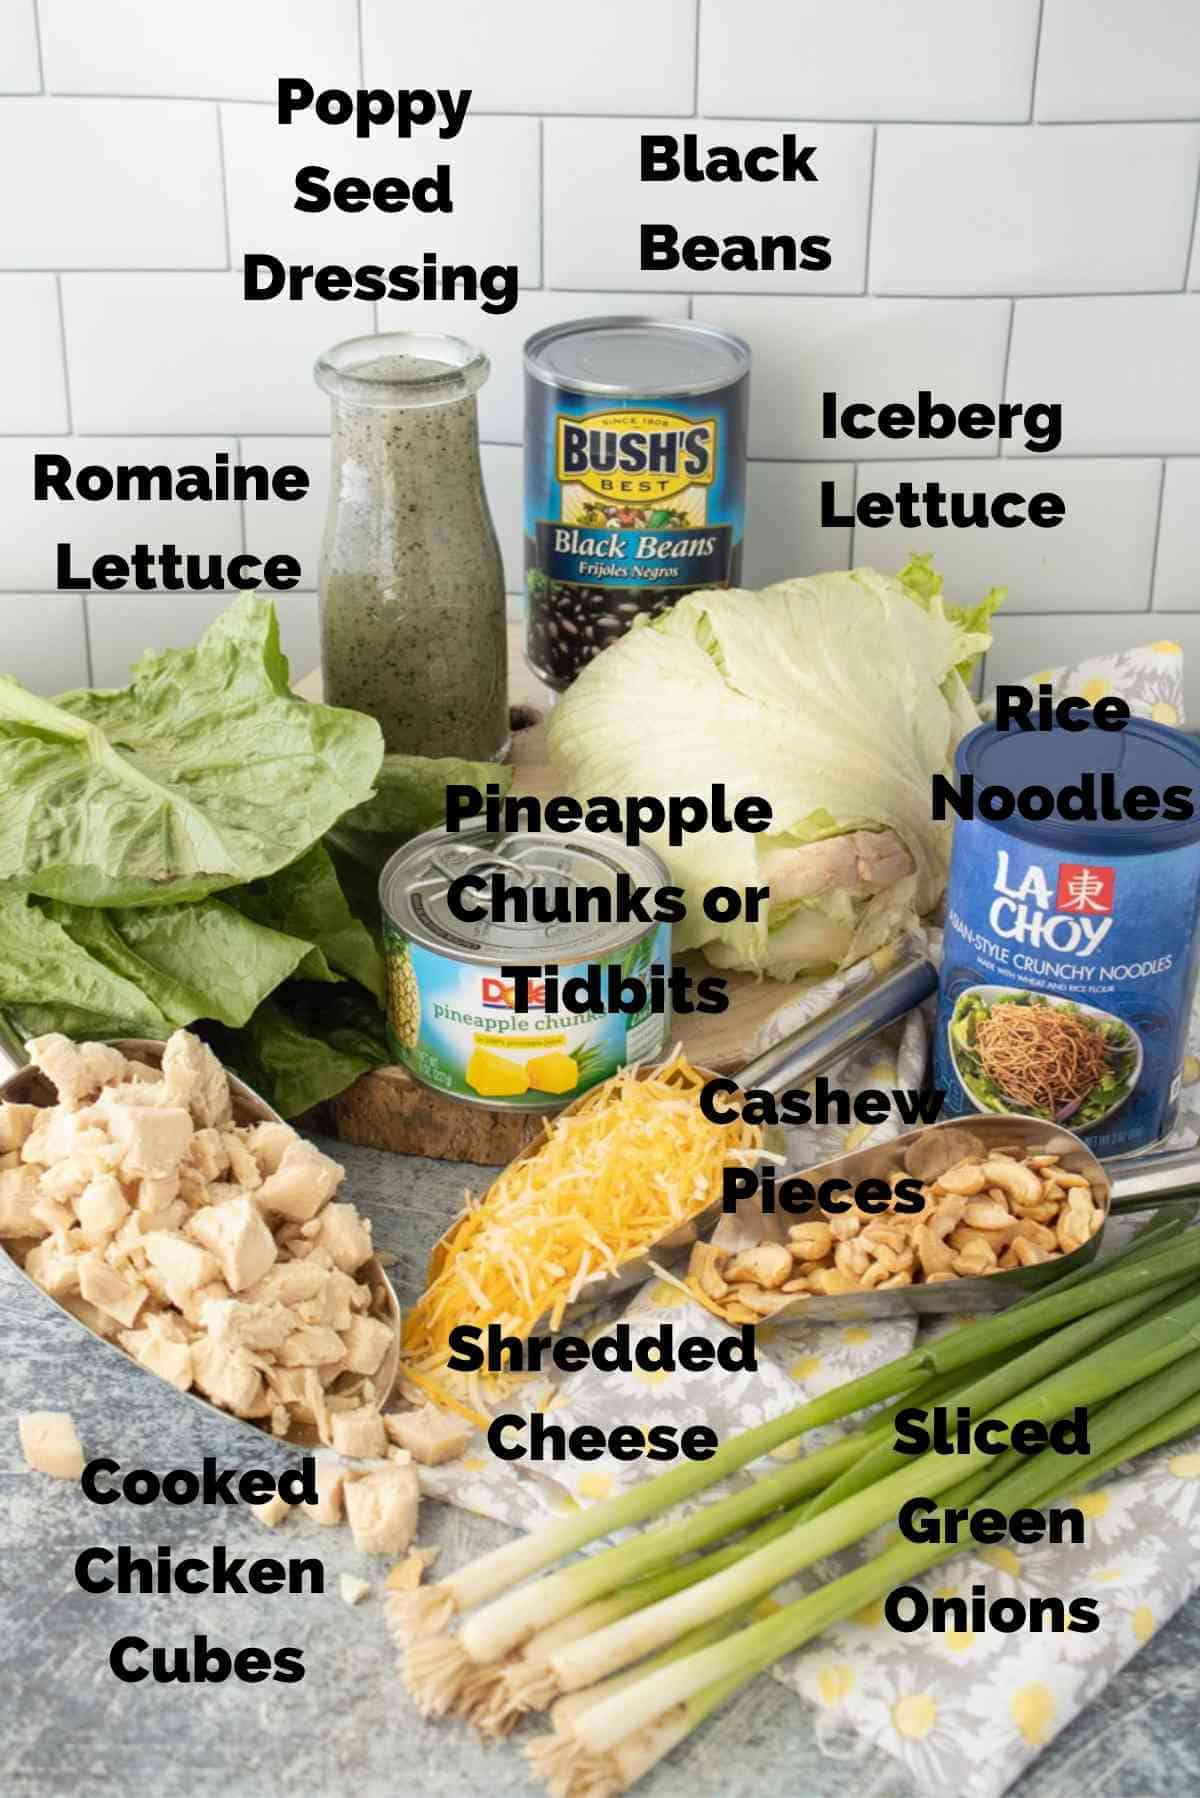 Ingredients for the caribbean chicken salad.